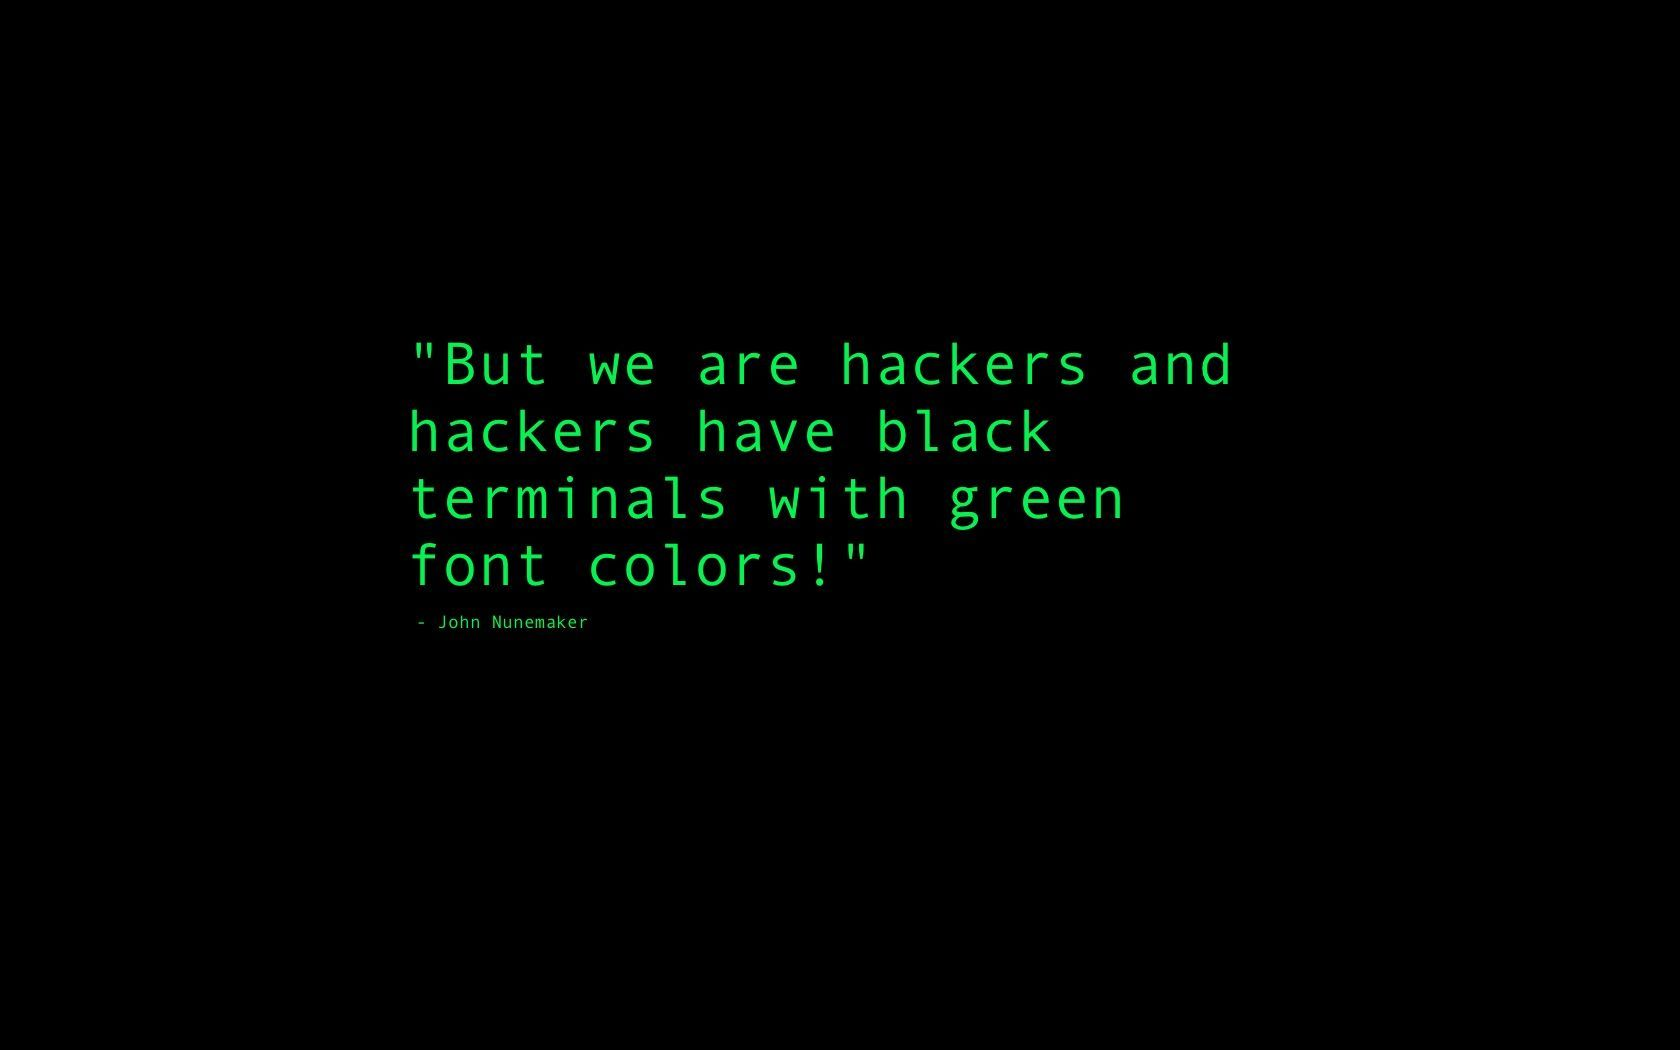 hack hacking hacker virus anarchy dark computer internet anonymous